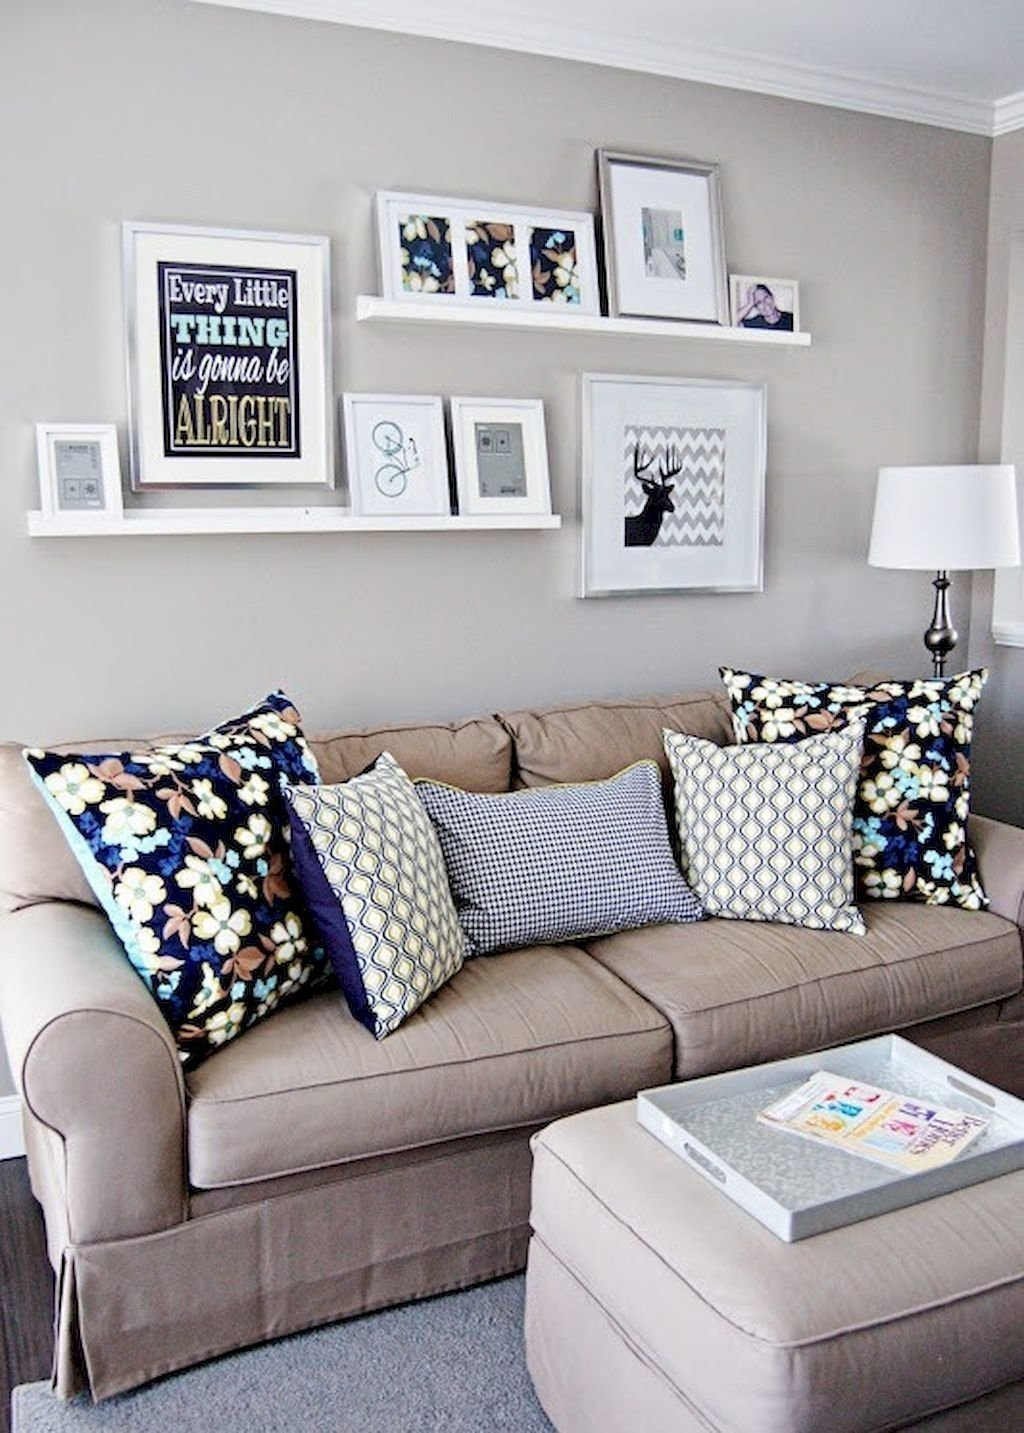 10 Beautiful Decorating Ideas On A Budget 40 beautiful and cute apartment decorating ideas on a budget 4 2020